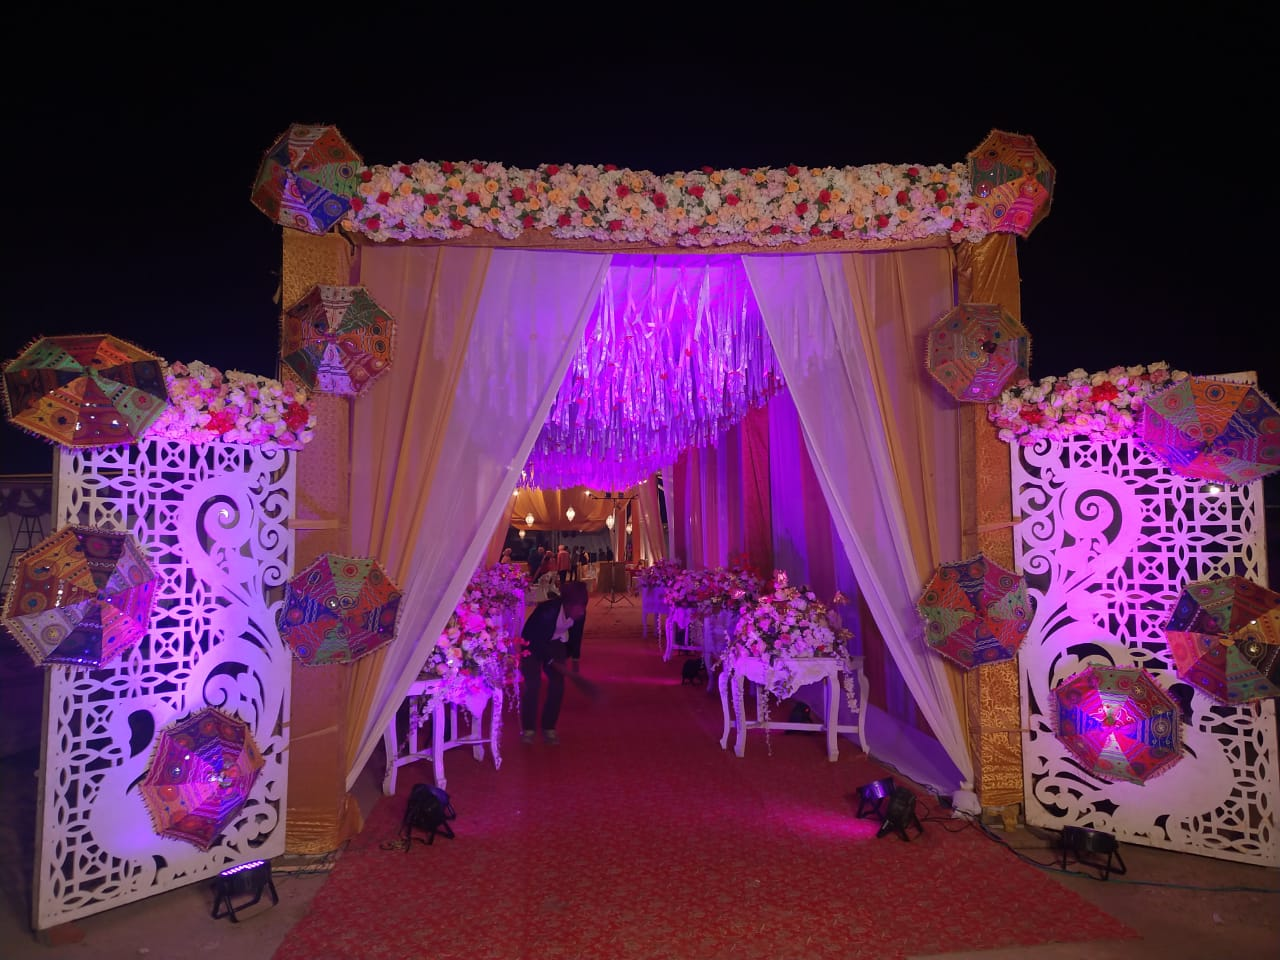 Expert outdoor catering in chail | Red Tag Caterers | Wedding catering services in chain,destination wedding place in chail himachal Pradesh.luxury outdoor catering in chail himchal - GL42680